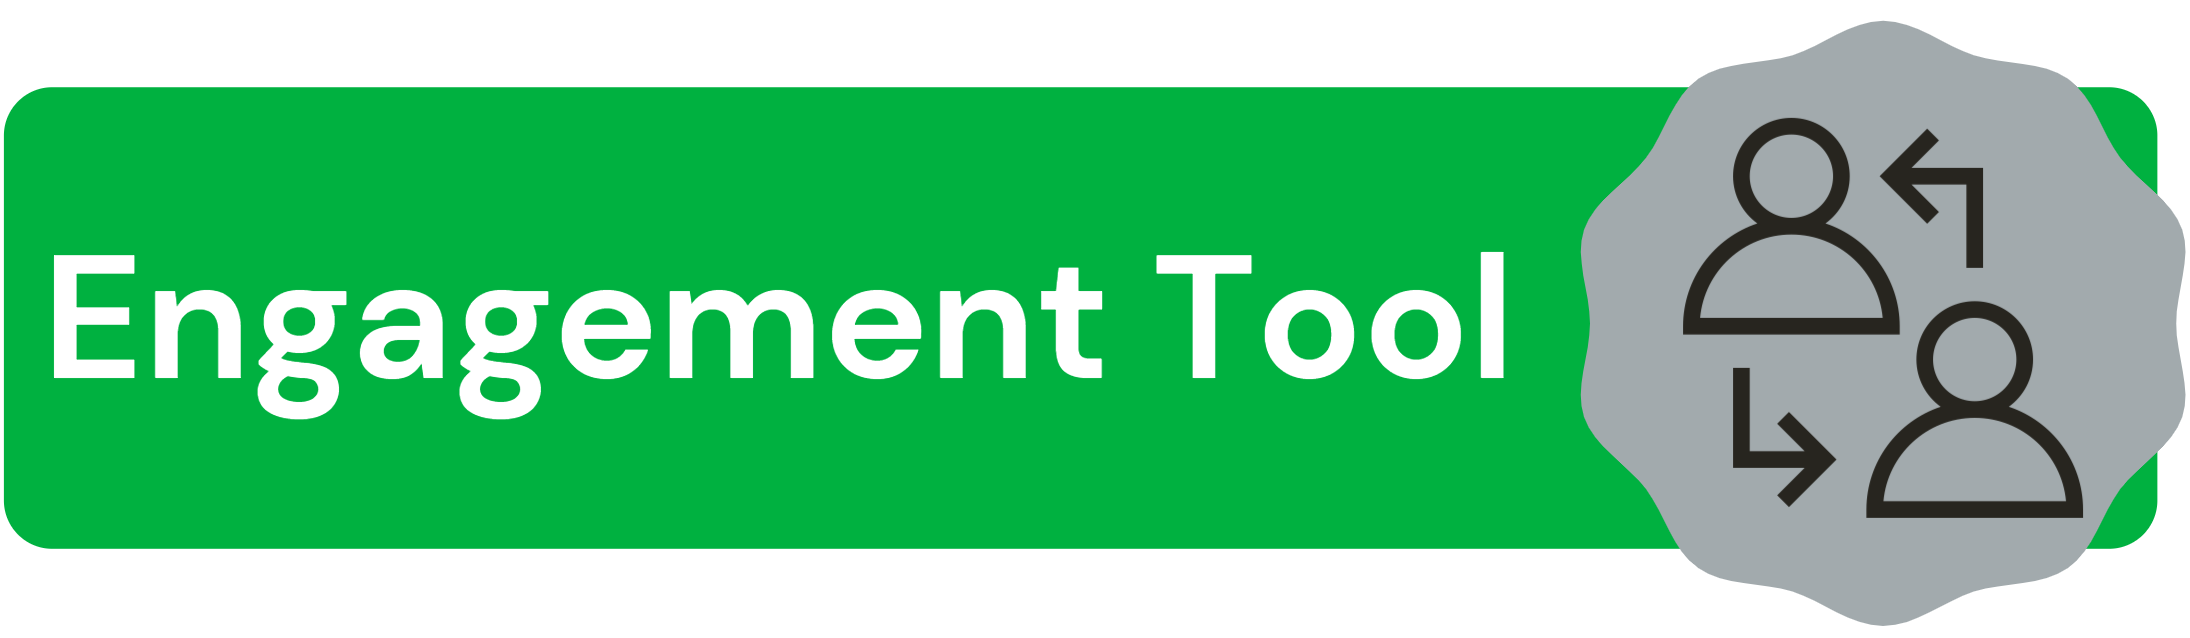 Green box with black text: Engagement Tools. Image of two people connected by arrows.